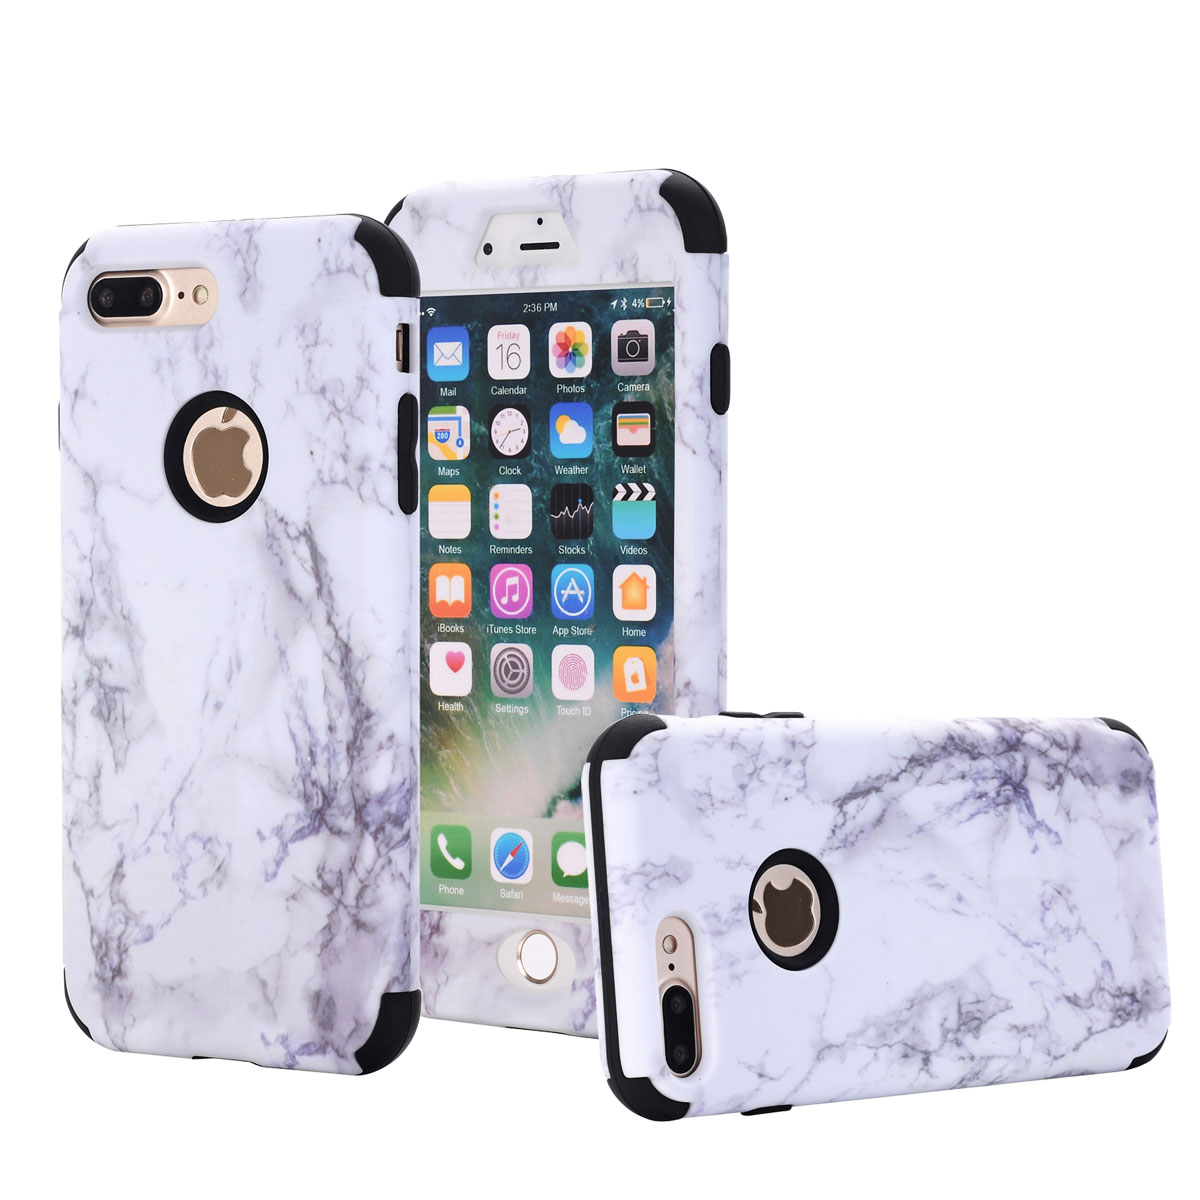 san francisco 0b3f6 9849e Details about Hybrid Rugged Granite Marble Protective Hard Cover Case Cute  For iPhone 7 8 Plus